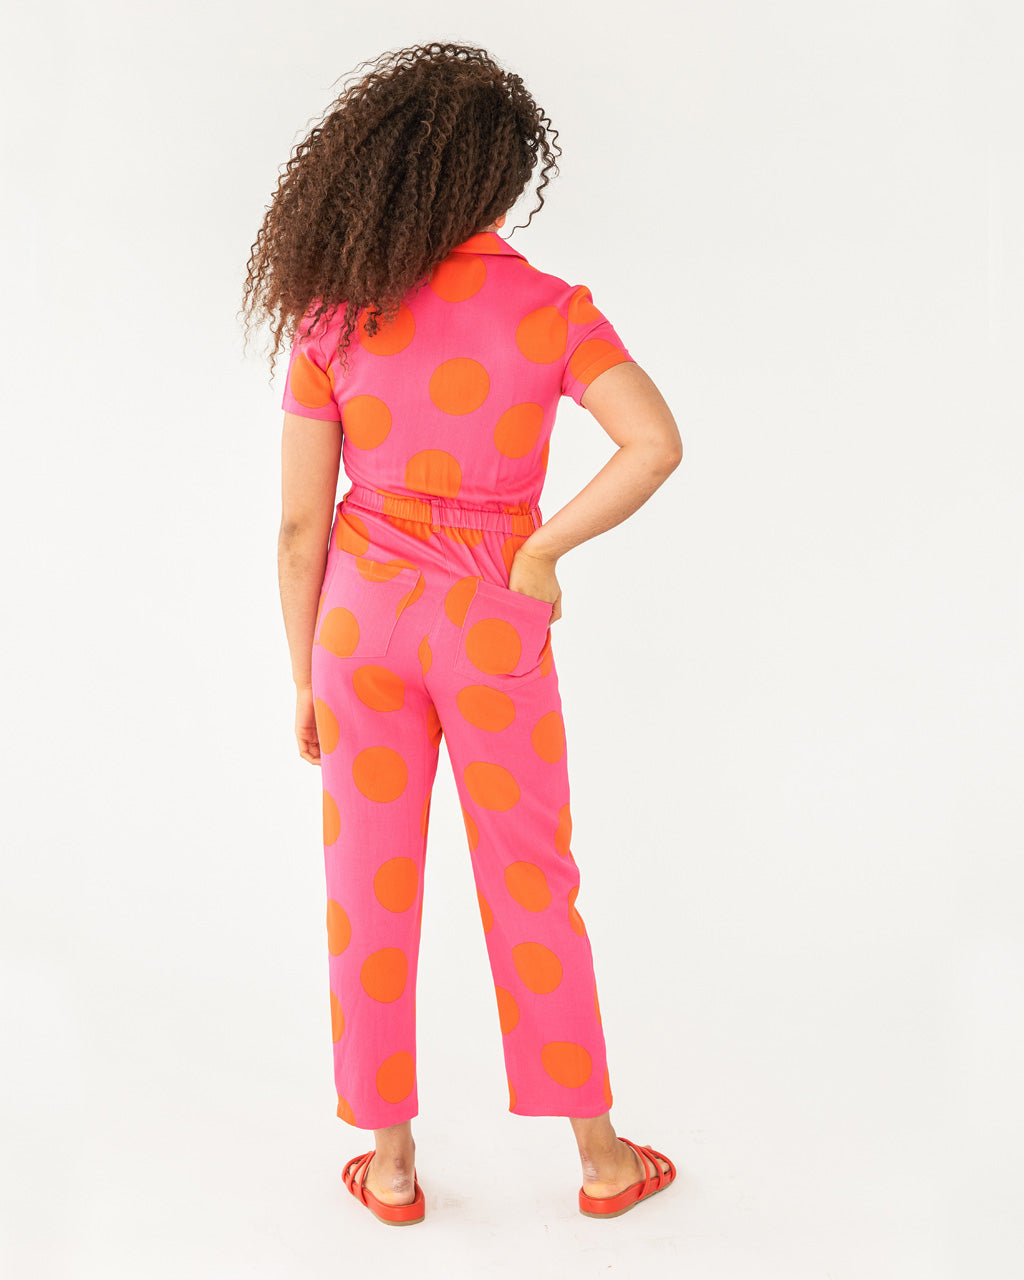 Pink short sleeve jumpsuit with large orange polka dots and a relaxed fit shown on model